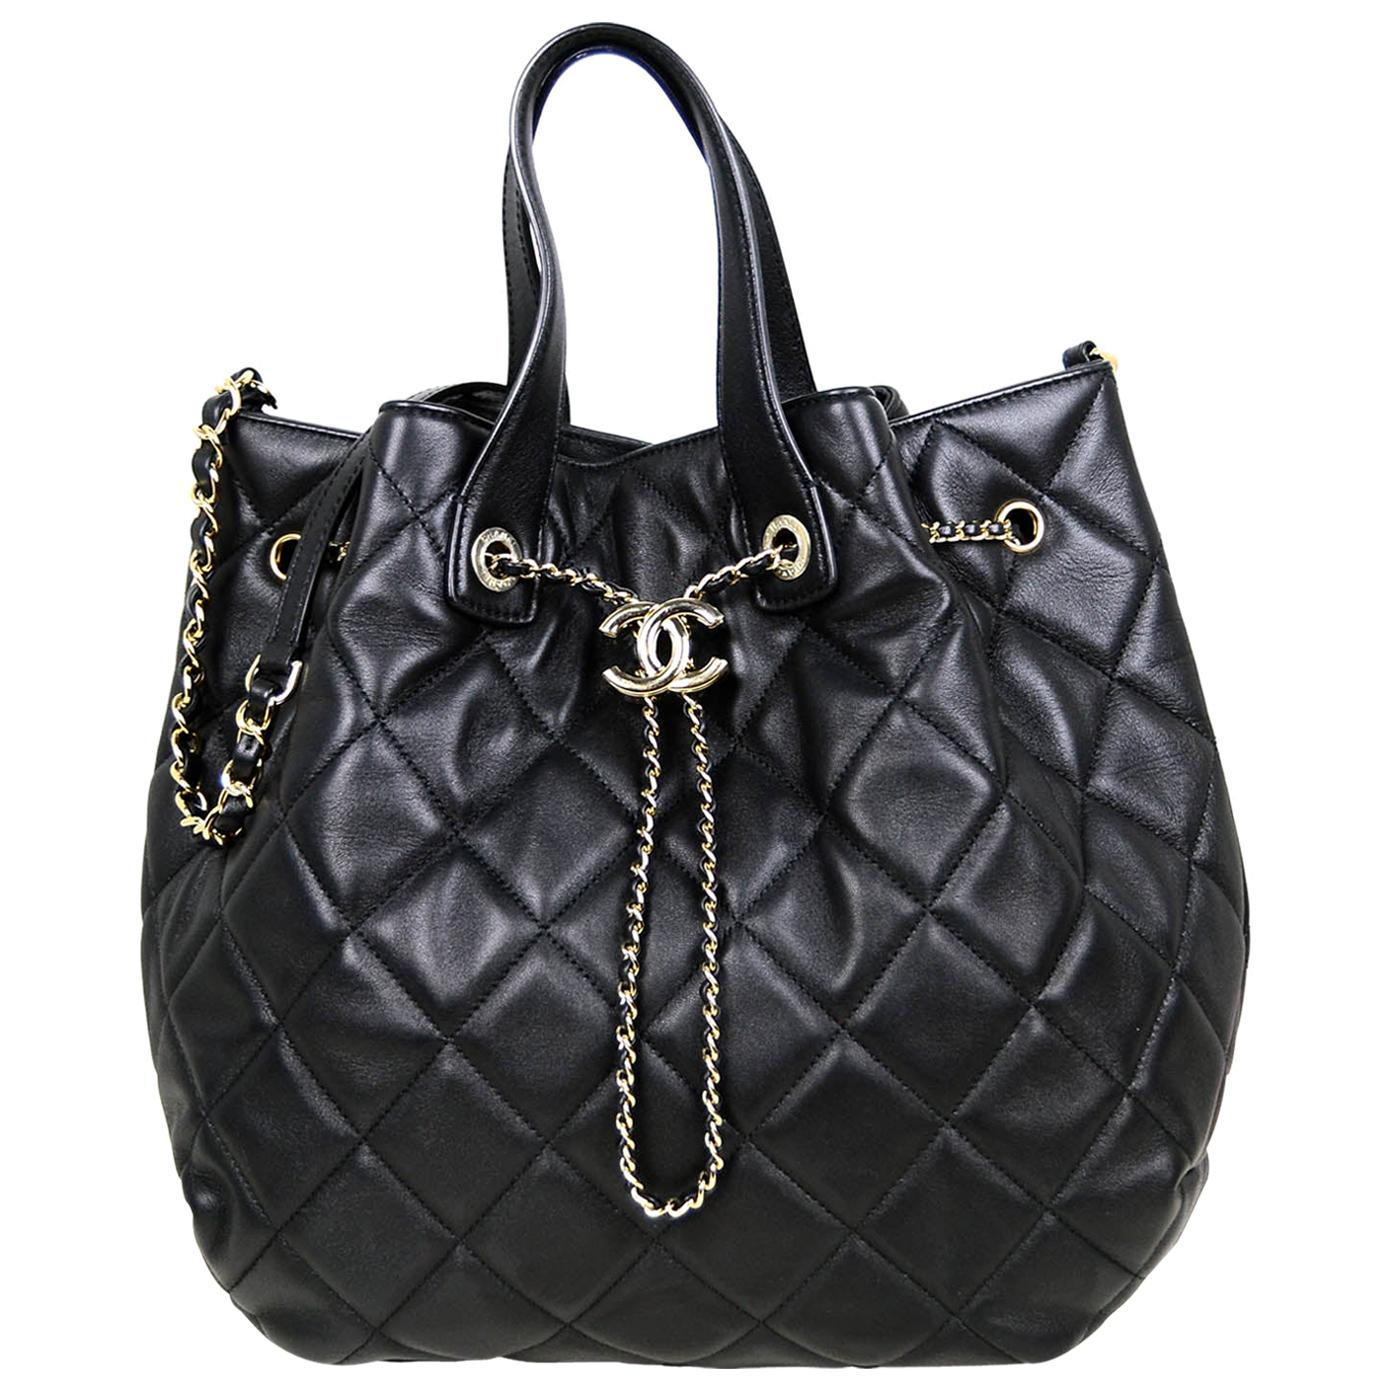 Chanel 2020 Black Lambskin Quilted CC Dweller Drawstring Bucket Tote Bag